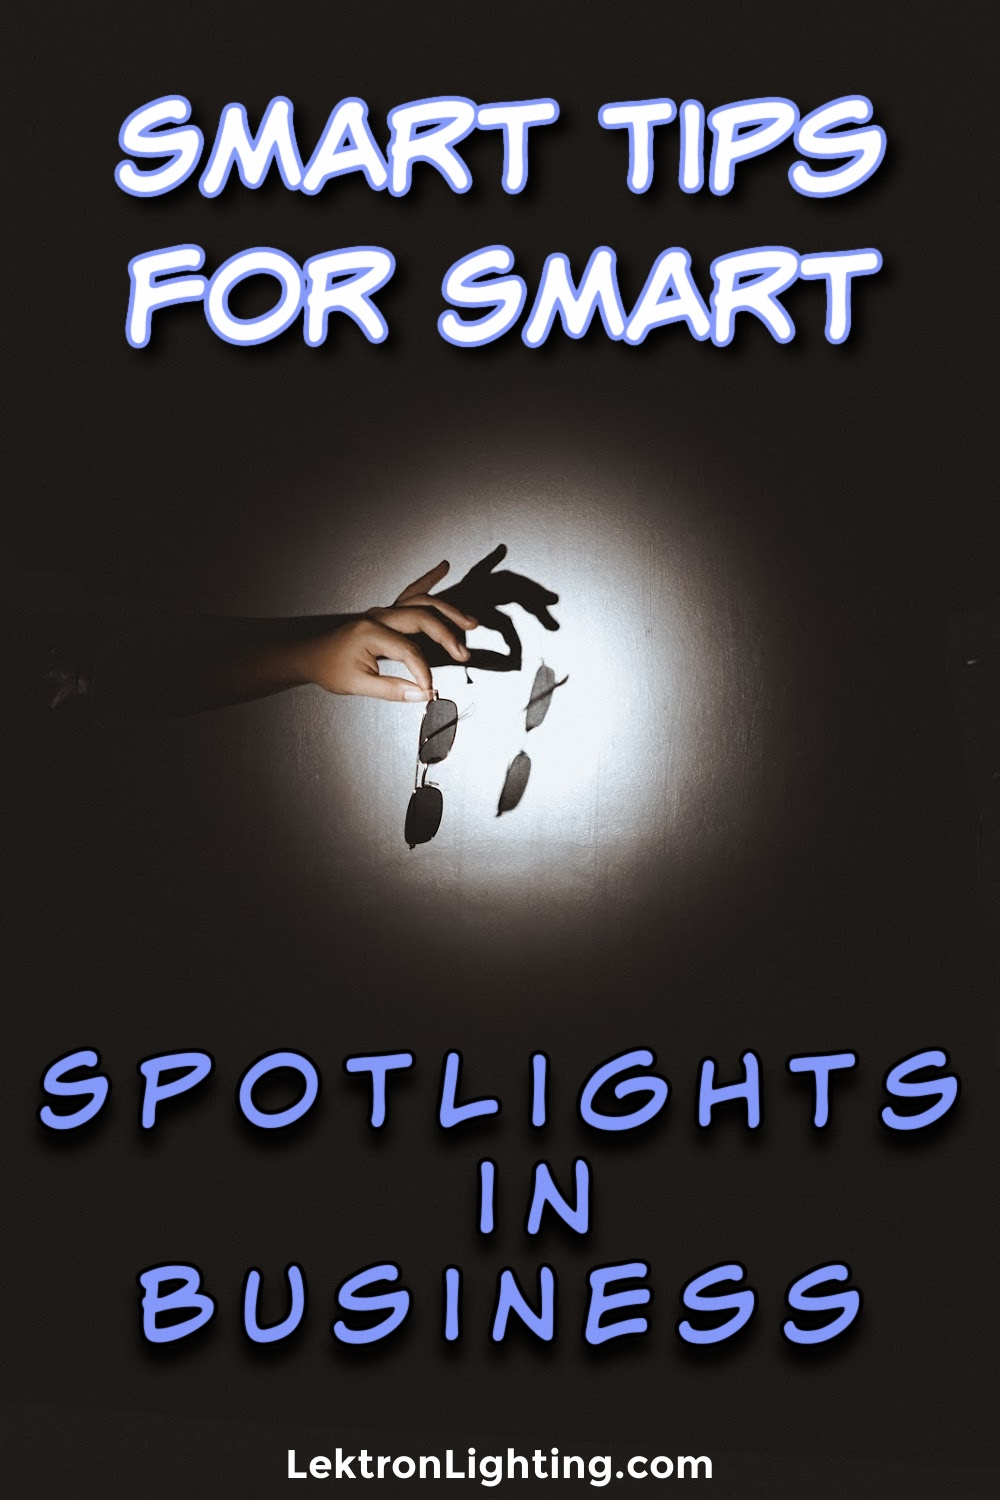 Smart spotlight tips for businesses can help put a spotlight on merchandise or on the safety of your employees outside the building.